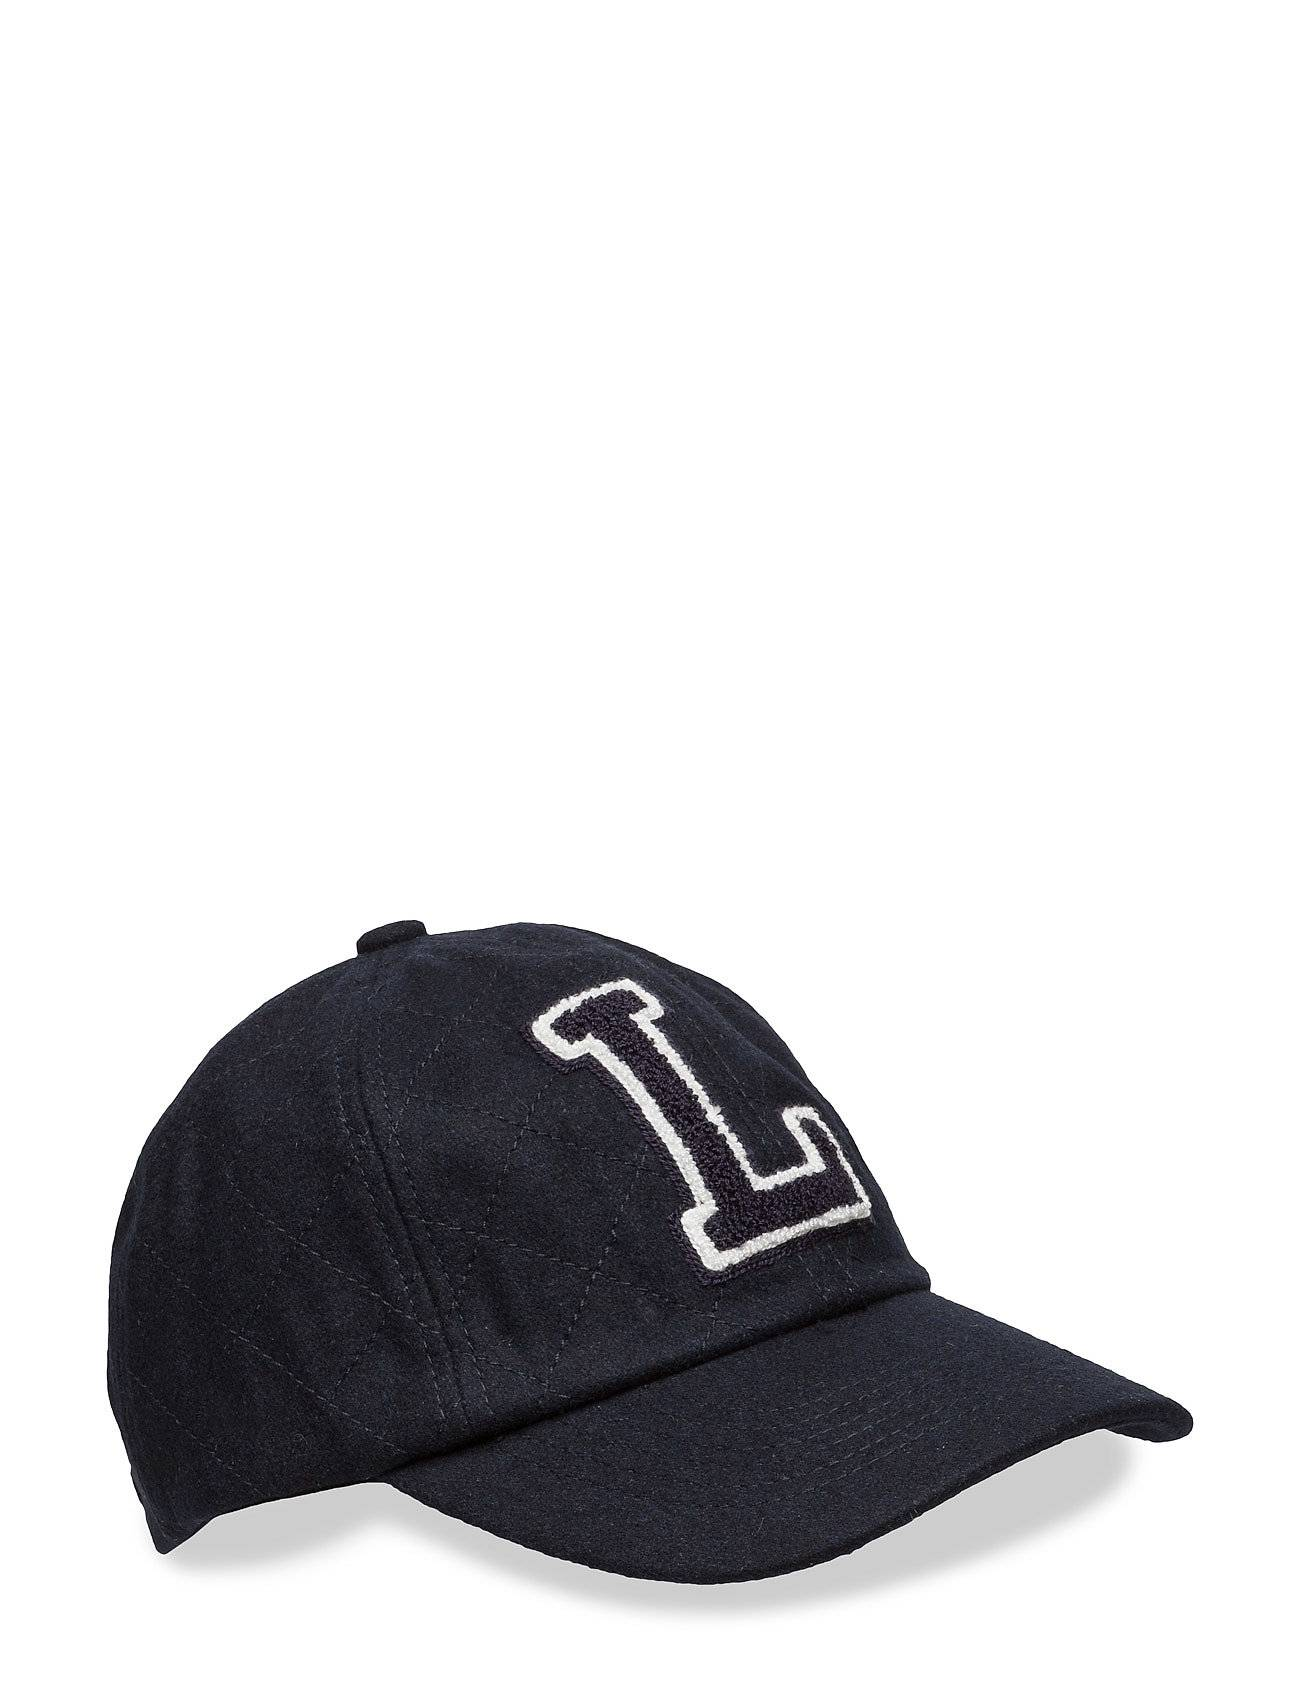 Lexington Company Phoenix Quilted Felt Cap